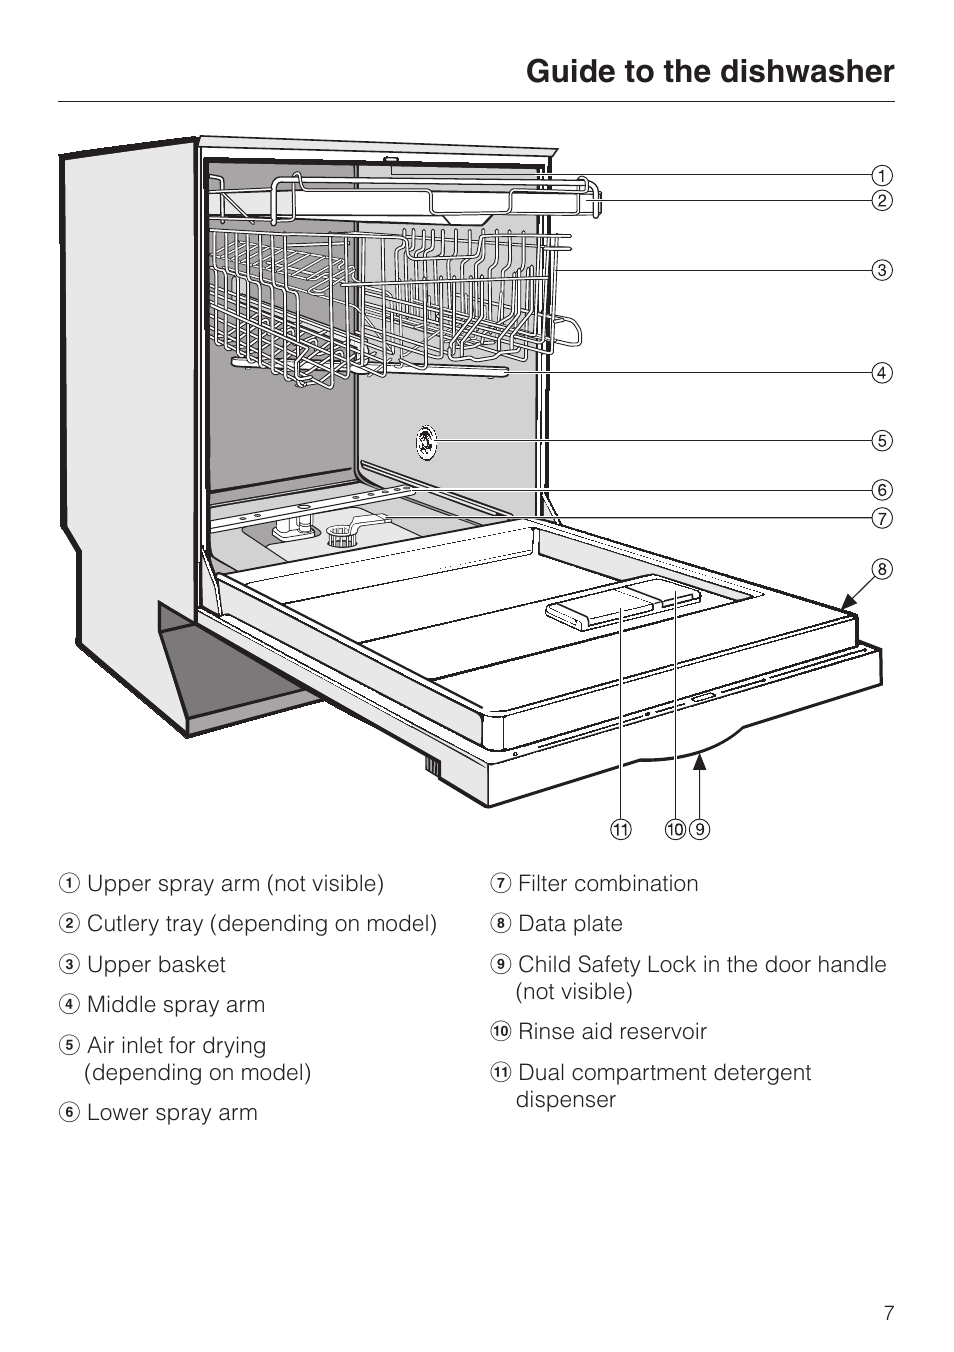 Guide To The Dishwasher 7 Miele Advanta Series G 2020 User Manual Page 52